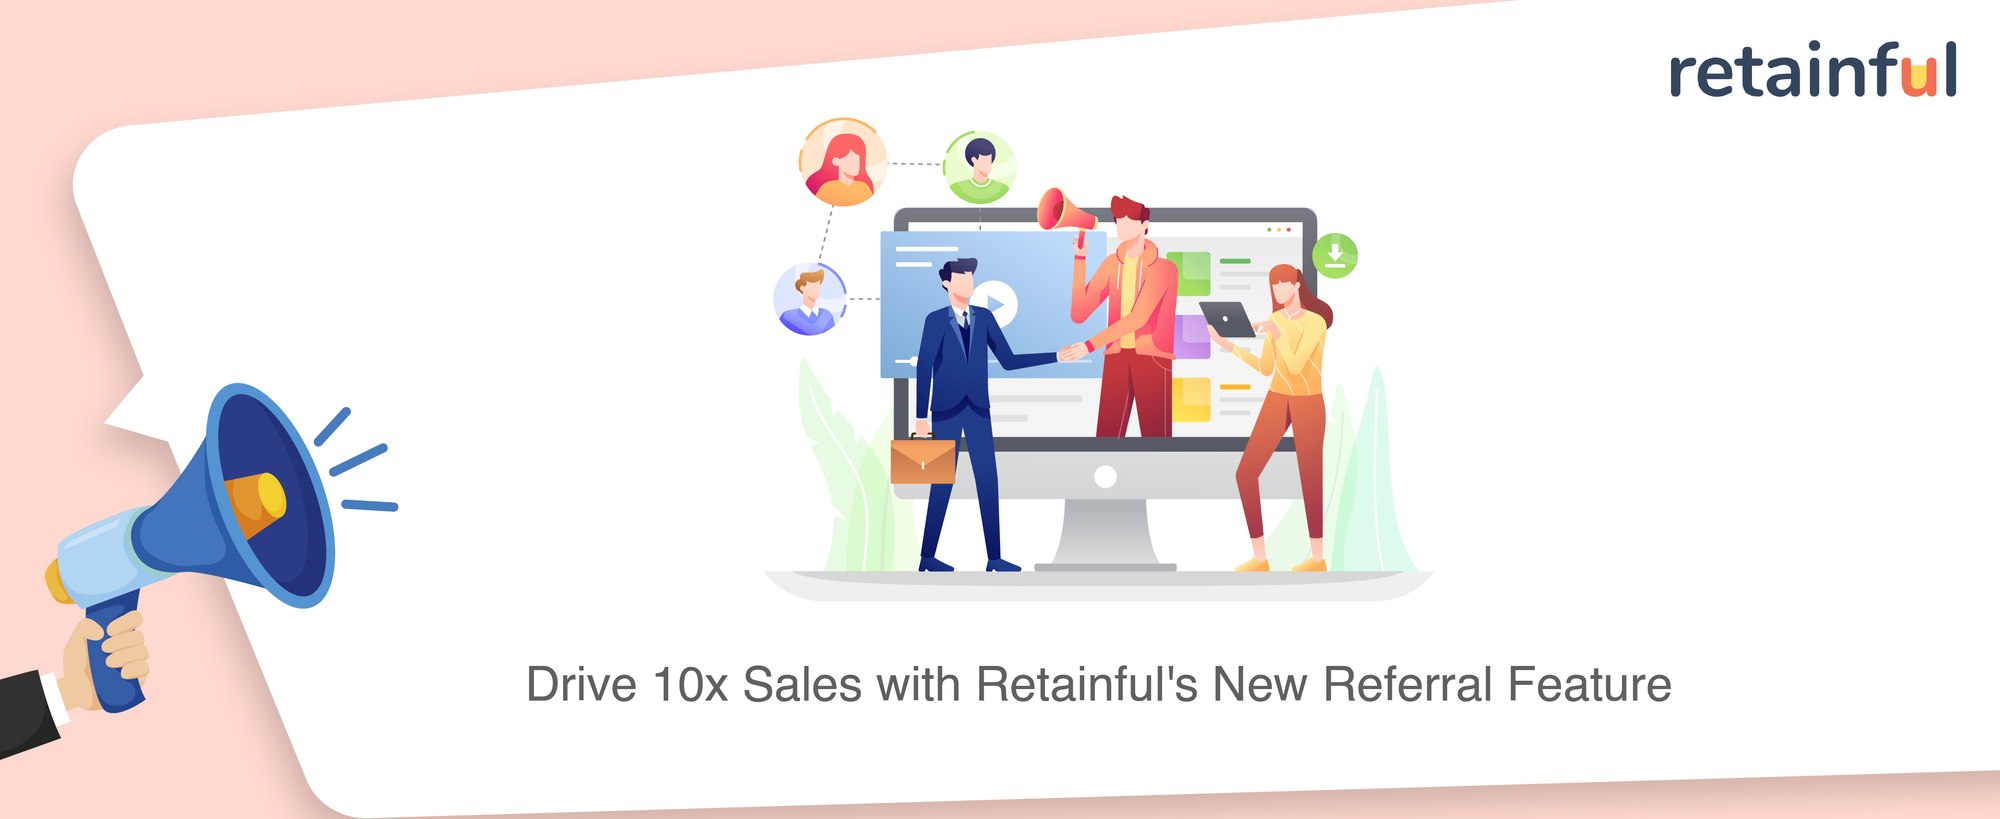 Drive 10x Sales In Your Shopify Store With Retainful's New Referral Feature